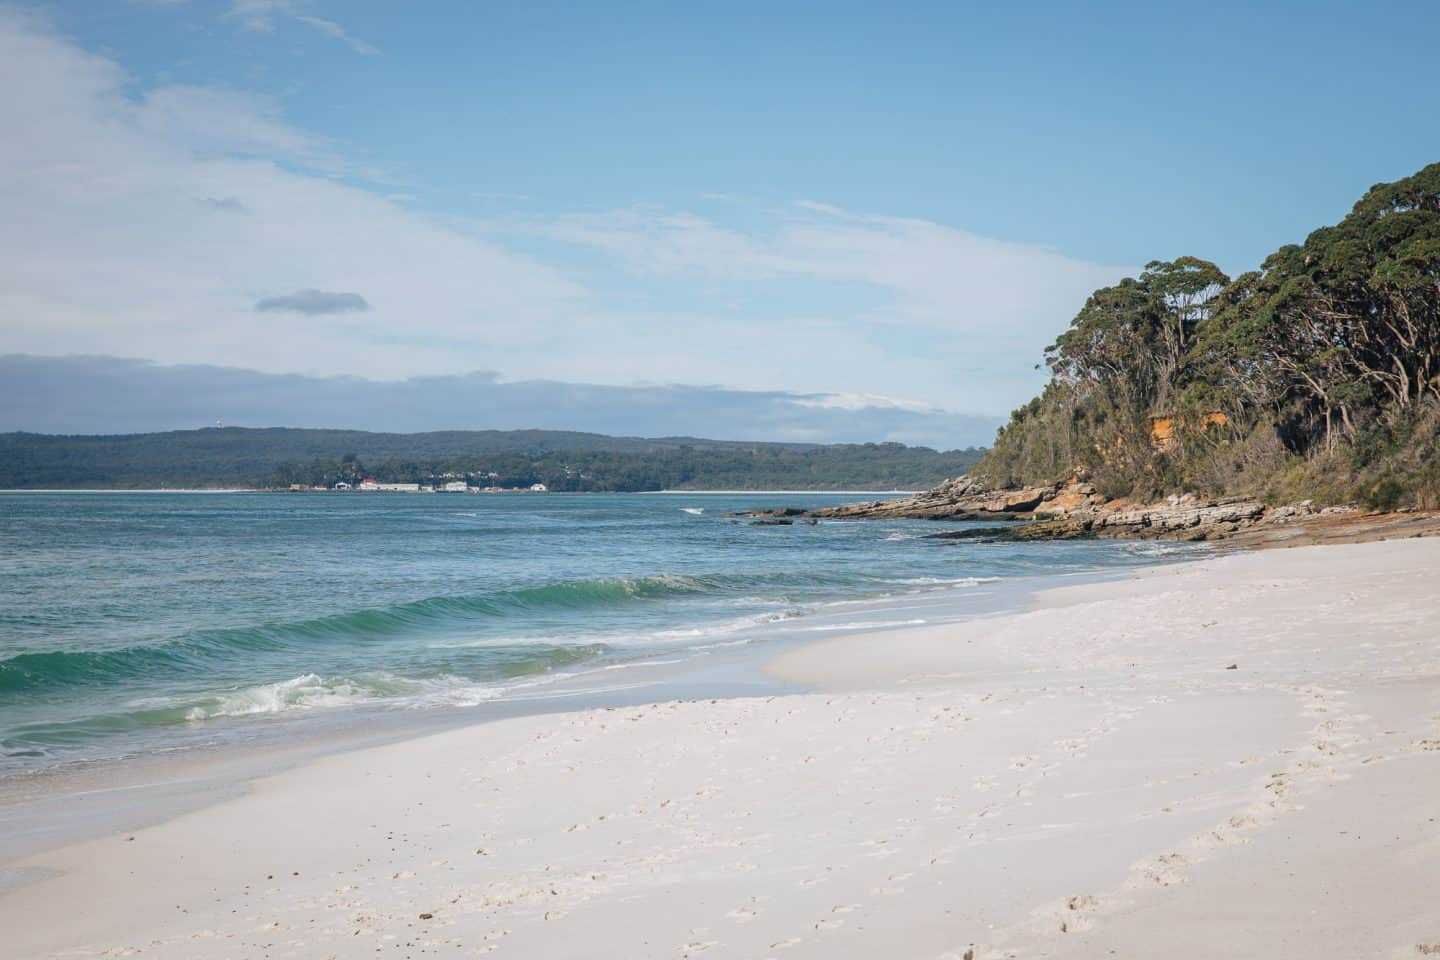 things to do in jervis bay, jervis bay things to do, jervis bay activities, jervis bay attractions, jervis bay camping, jervis bay holiday park, things to do jervis bay, things to do at jervis bay, what to do in jervis bay, beaches in jervis bay, accommodation in jervis bay, beaches at jervis bay, chinamans beach, chinamans beach jervis bay